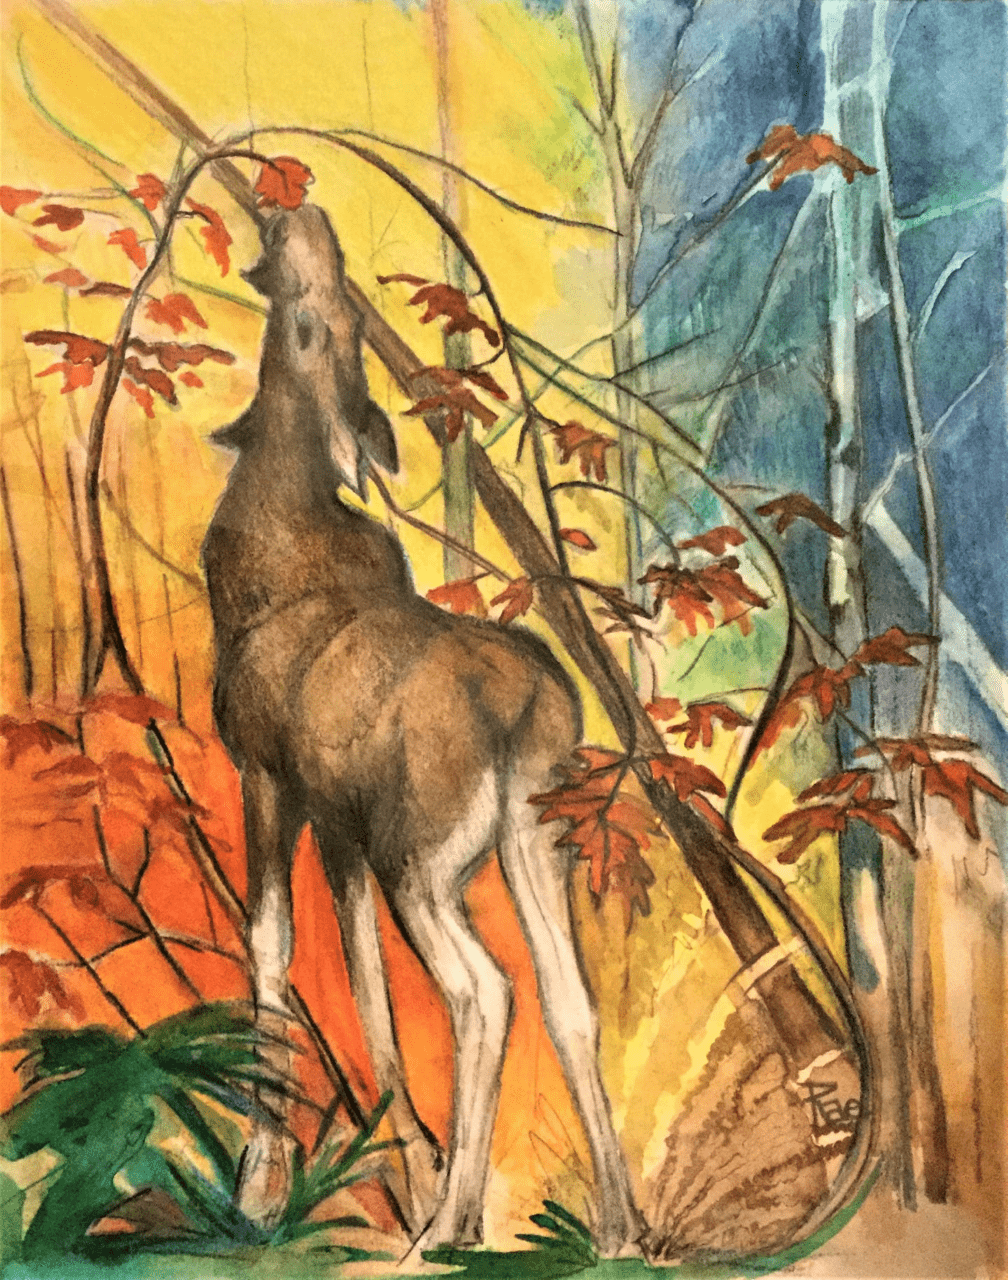 A painting of a deer.